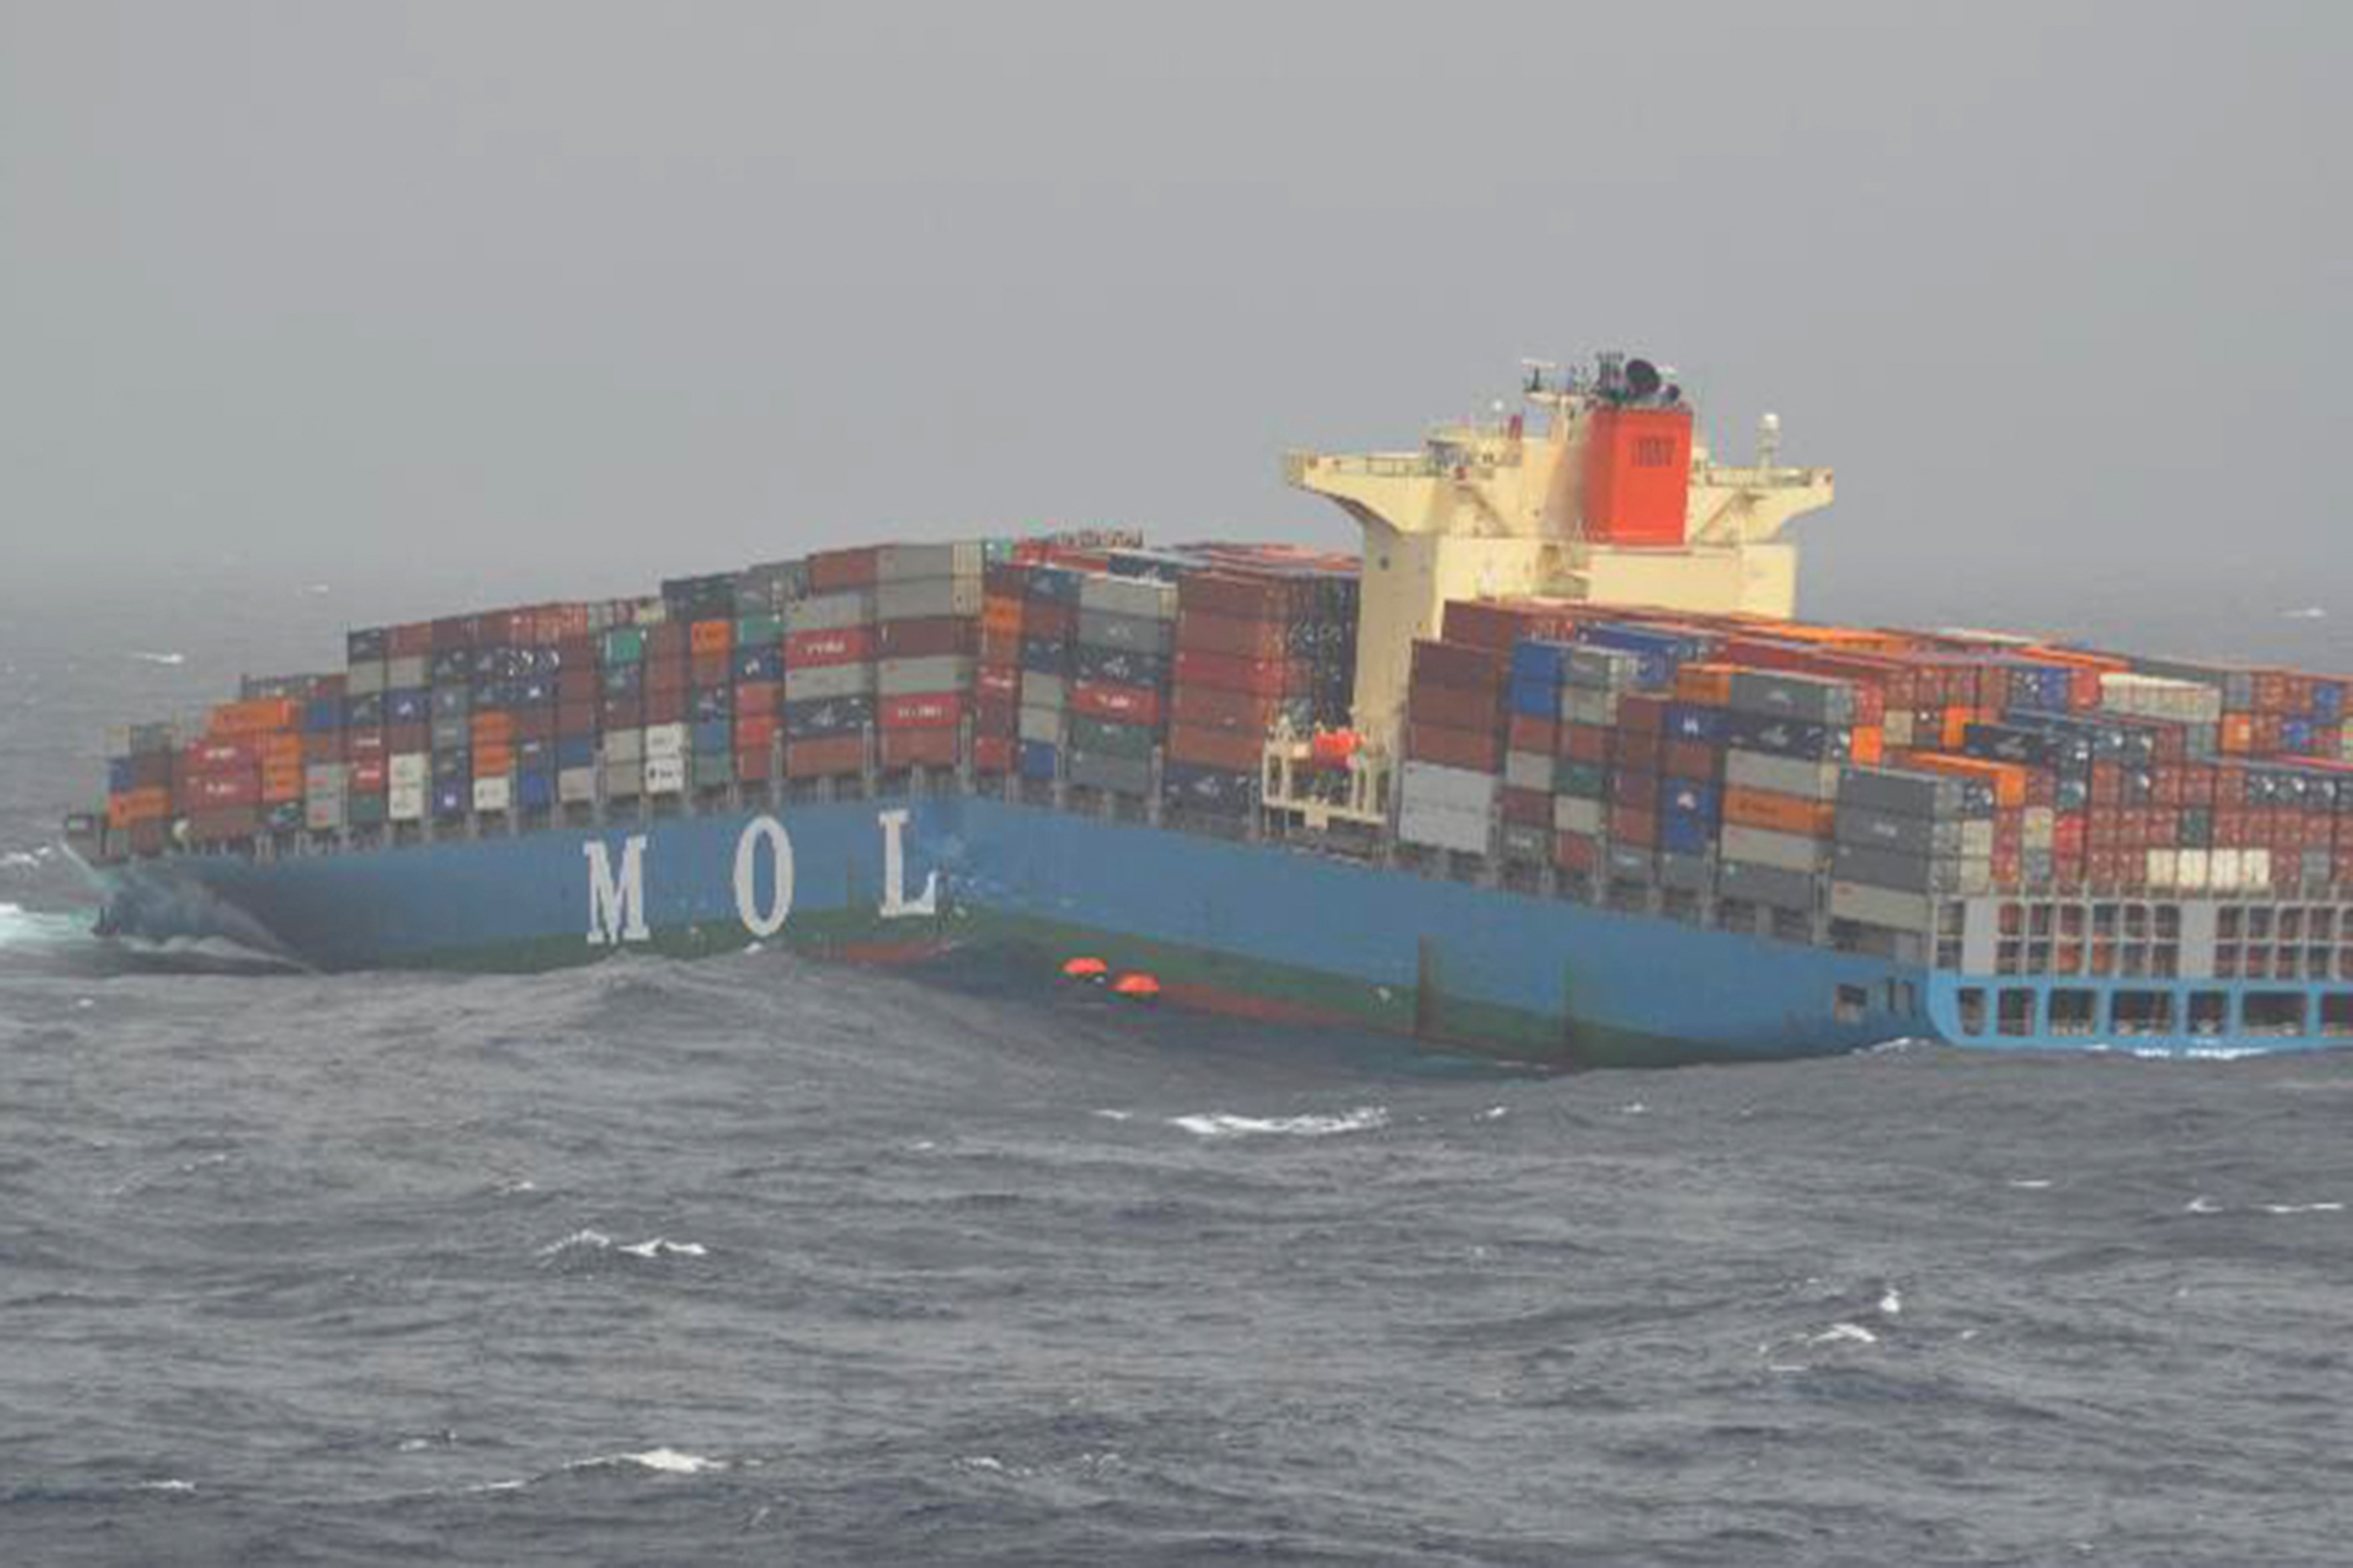 The MOL Comfort breaks in half and later sinks completely (Photo MOD / DEPARTMENT OF DEFENSE / AFP)